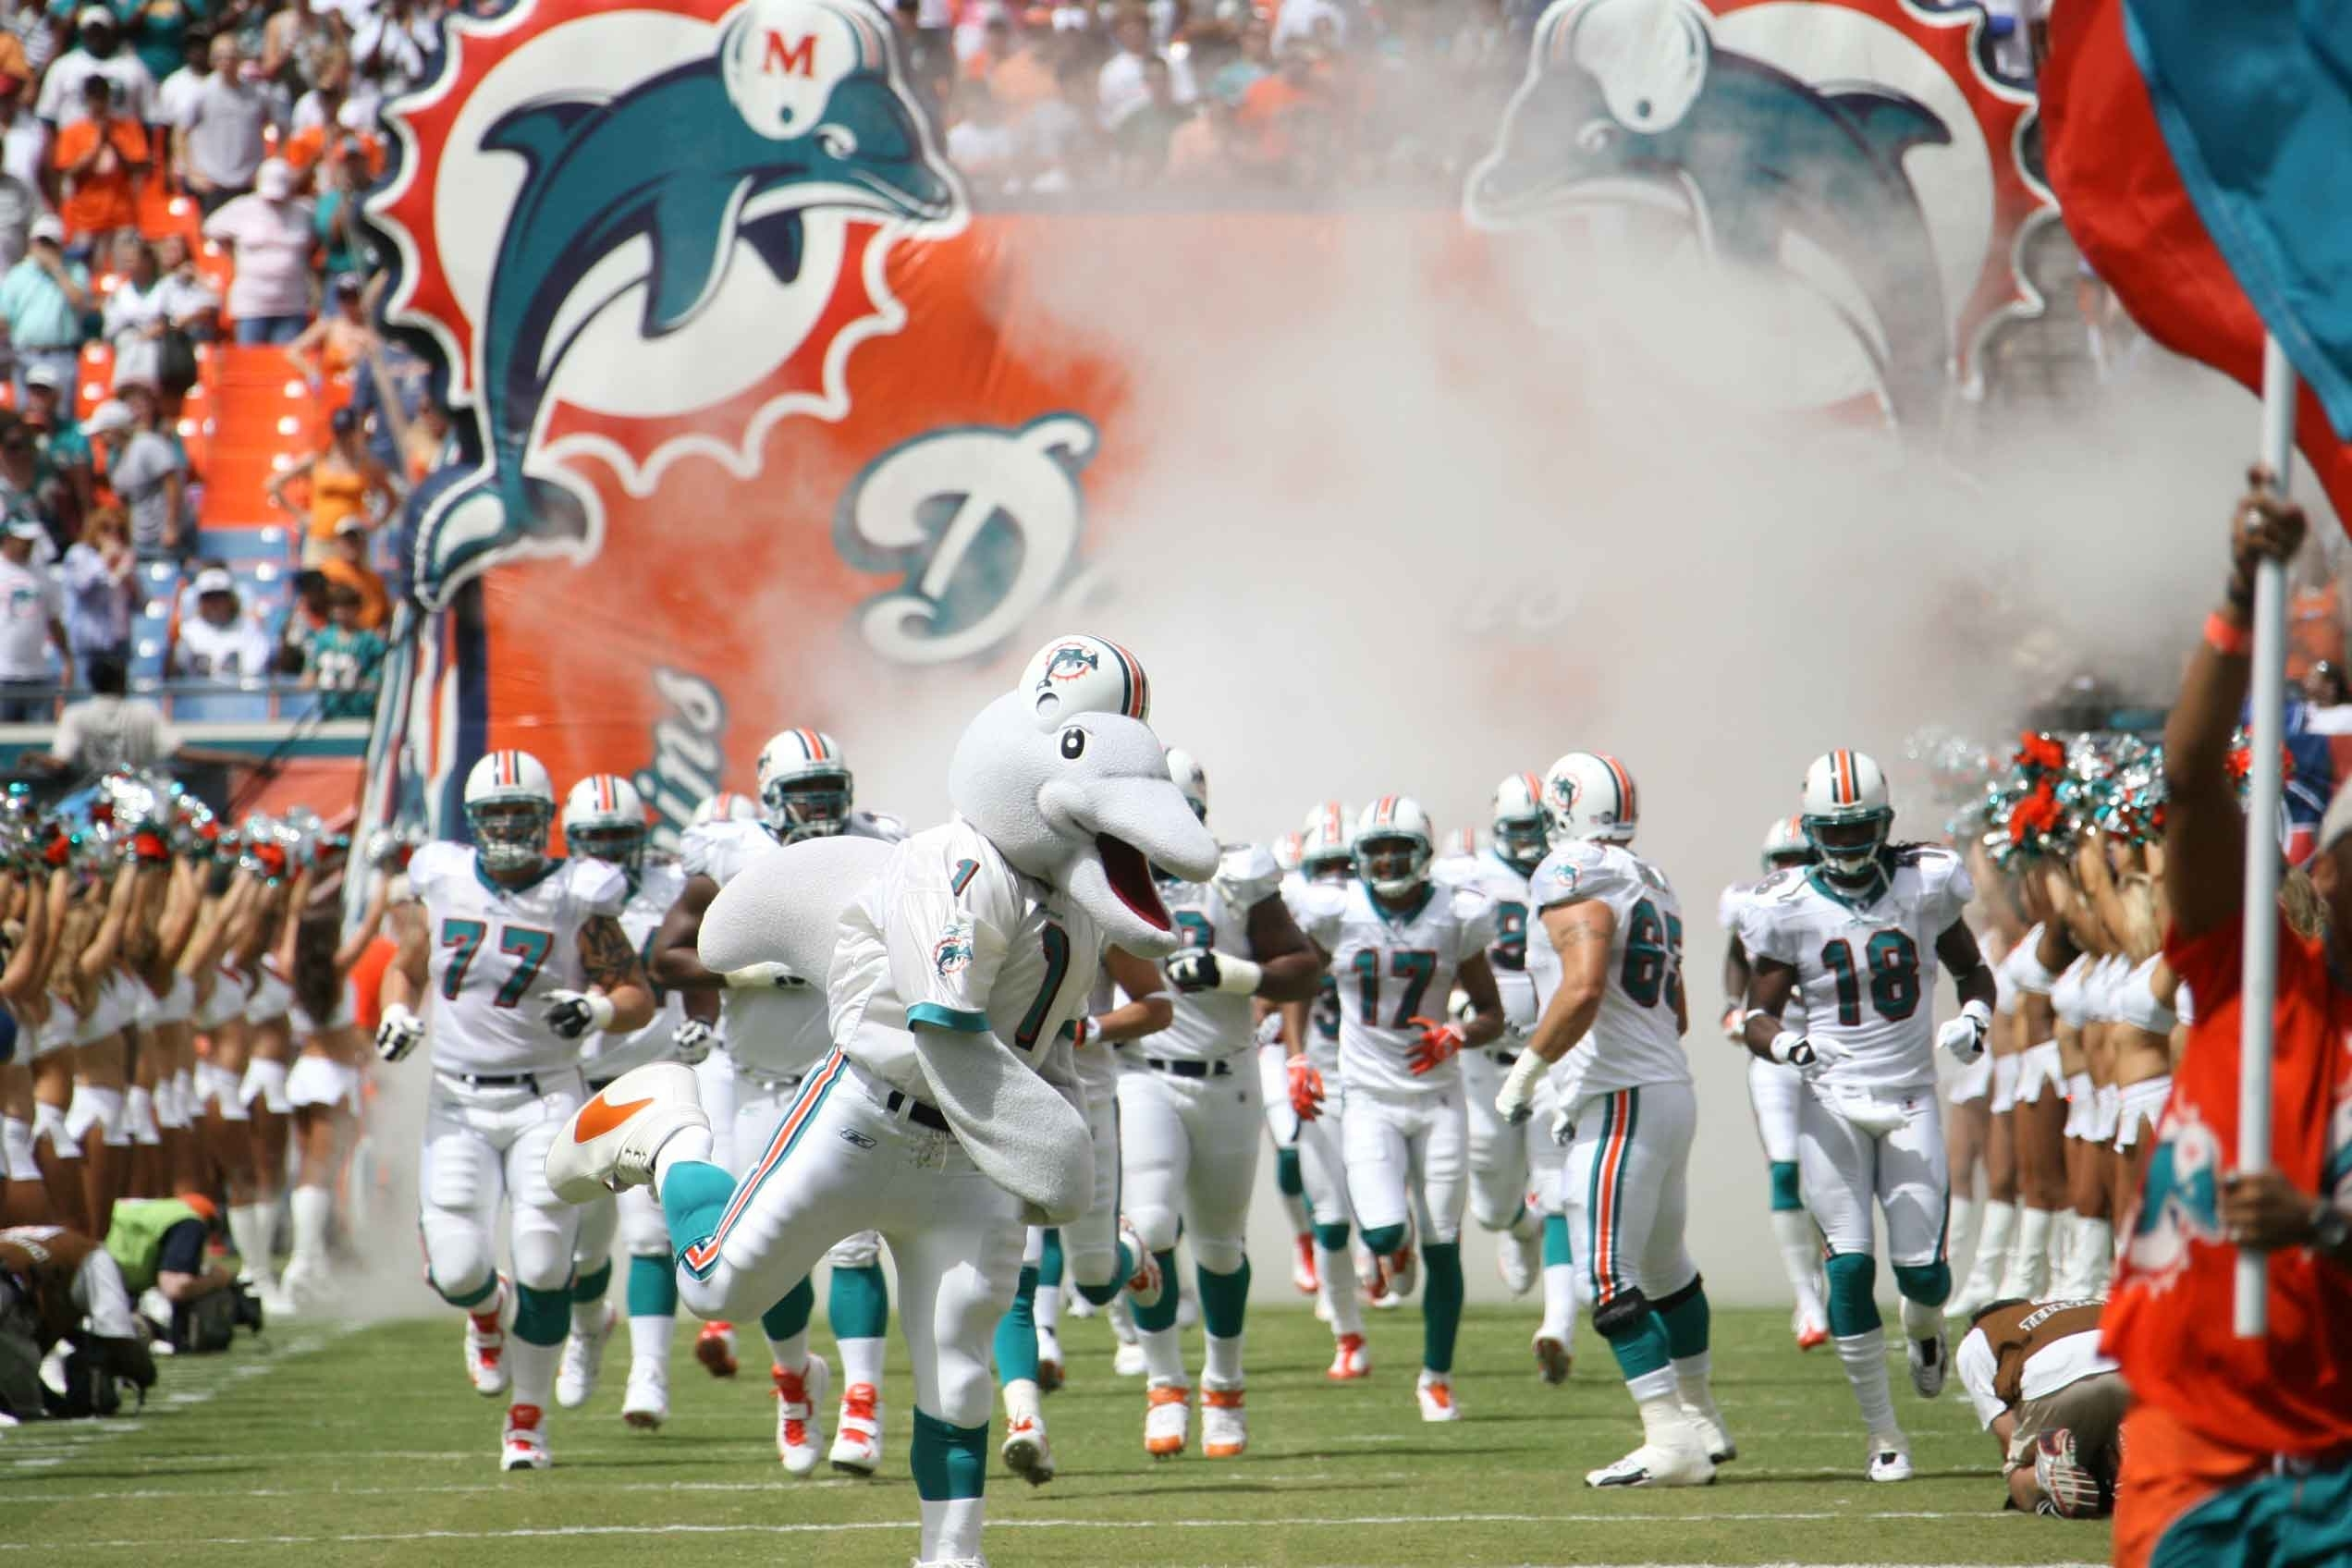 Miami Dolphins Football Season Kicks Off September 13Th with Miami Dolphins Super Bowl Years